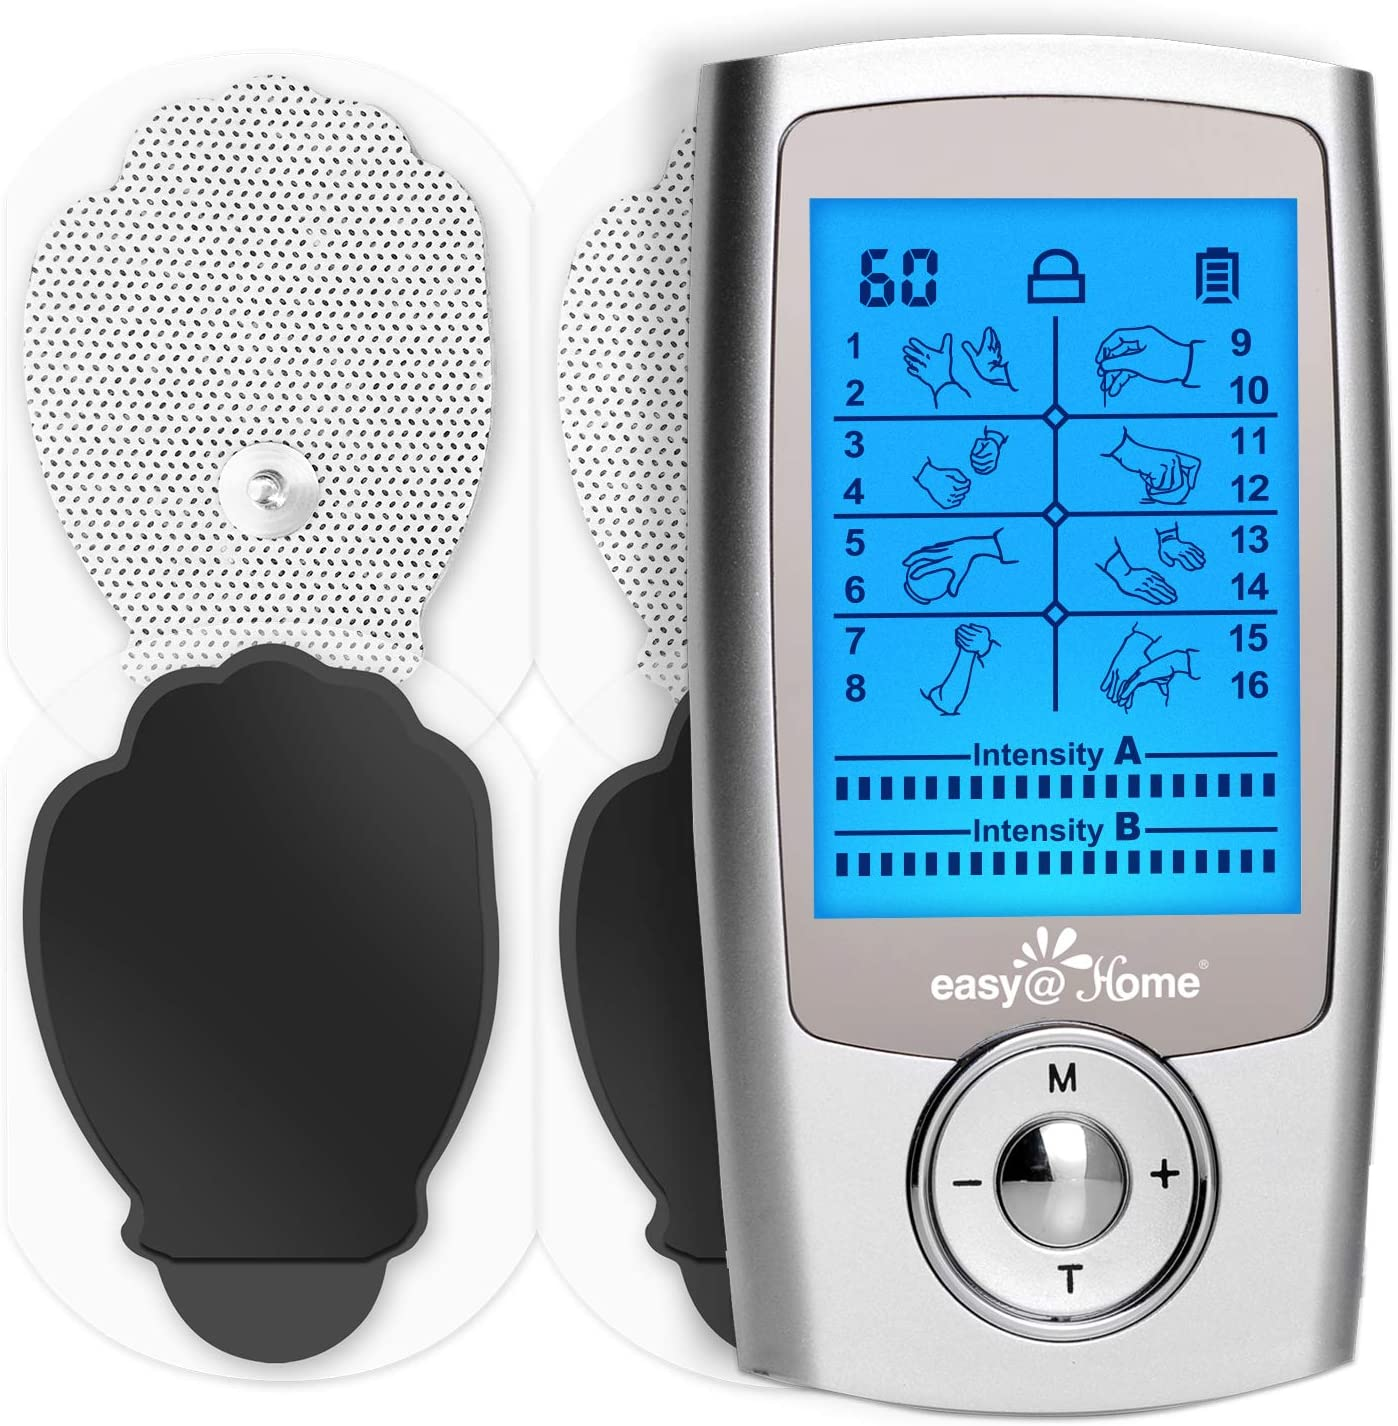 TENS Unit Muscle Stimulator - Easy@Home Electronic Pulse Massager - 510K Cleared for OTC Use Handheld Pain Relief Therapy Device – Pain Management on The Shoulder, Joint, Back, Leg&More (EHE029N)